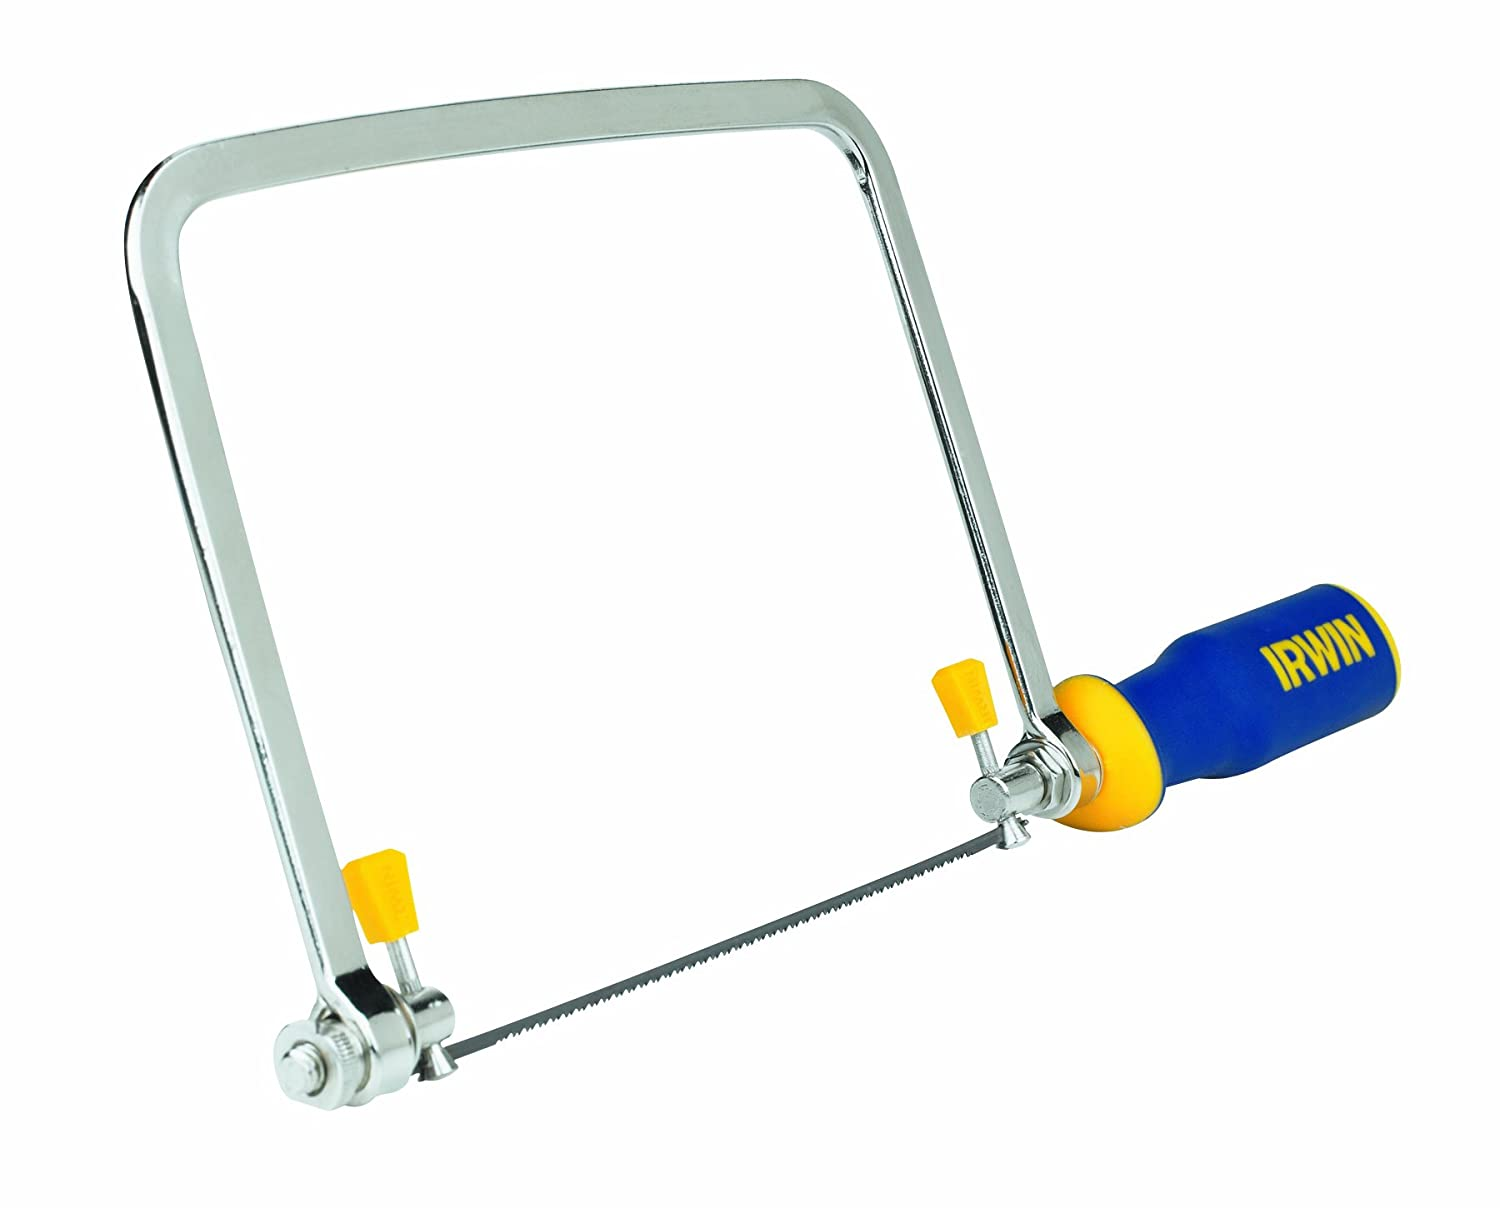 Irwin tools protouch coping saw 2014400 amazon greentooth Choice Image